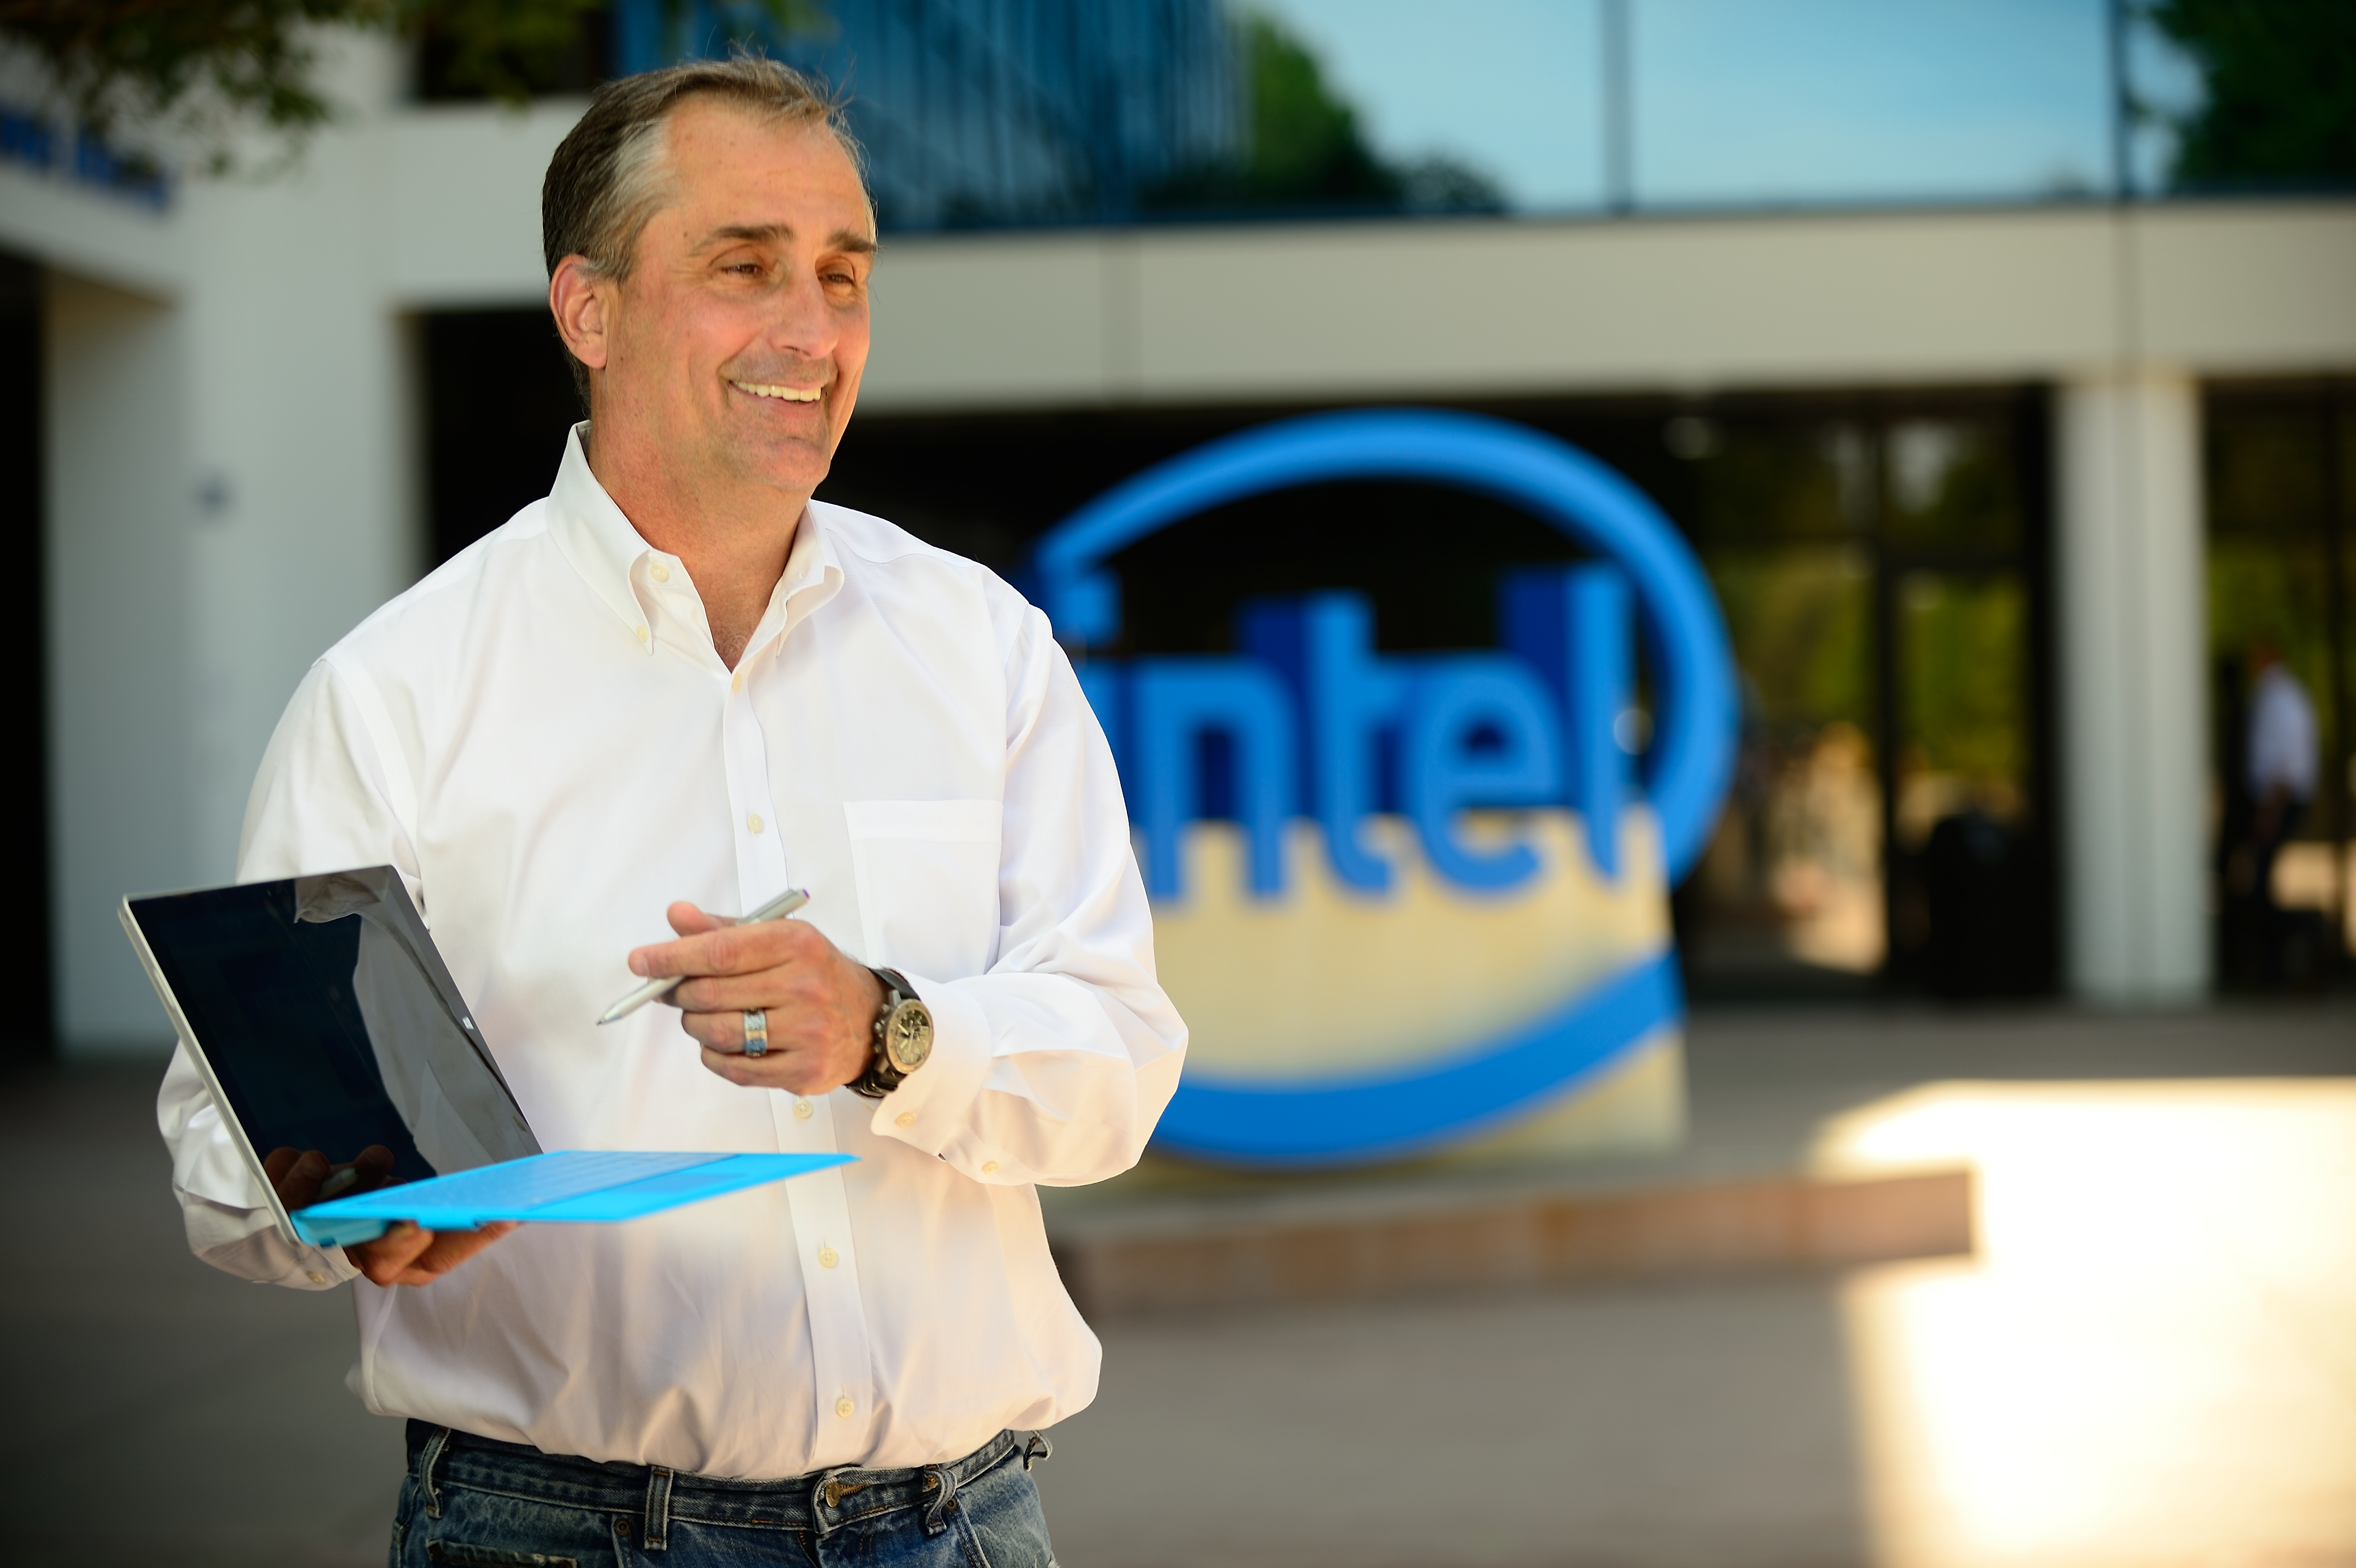 Intel CEO Brian Krzanich uses his new Surface Pro 3. Now available with Intel Core i3, i5 or i7 processors, powering one of the most productive tablets on the market. (Photo: Business Wire)